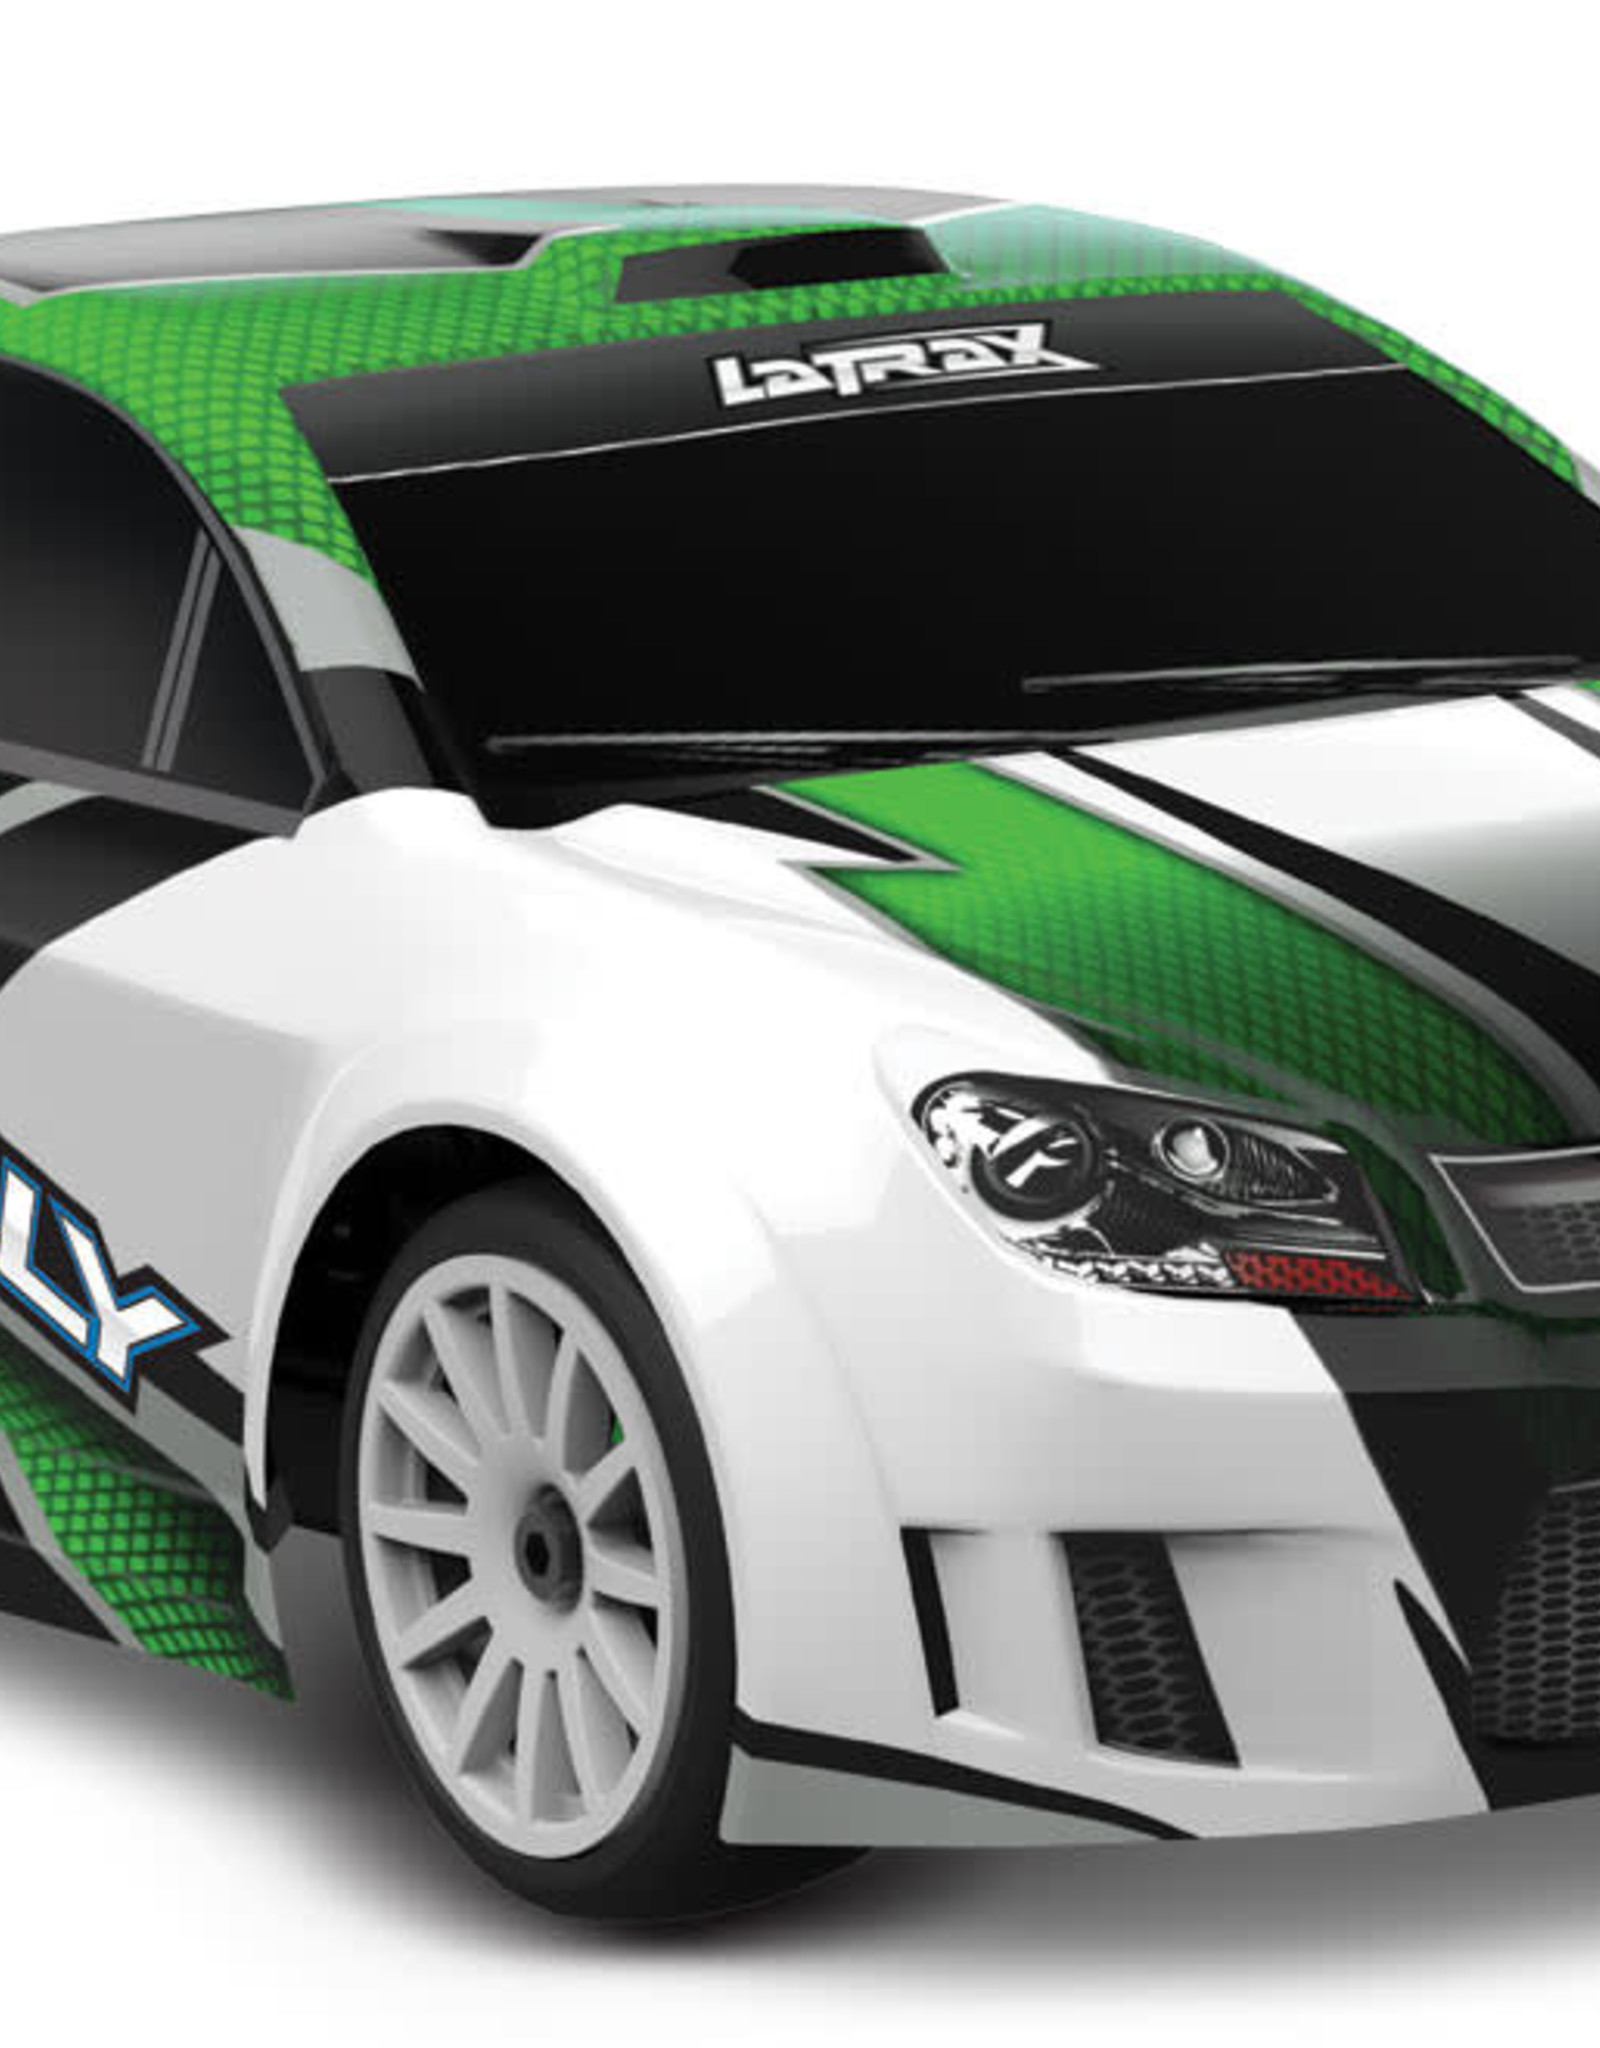 Traxxas TRA75054-5 GREEN LaTrax® Rally: 1/18 Scale 4WD Electric Rally Racer. Ready-To-Race® and Powered by Traxxas®